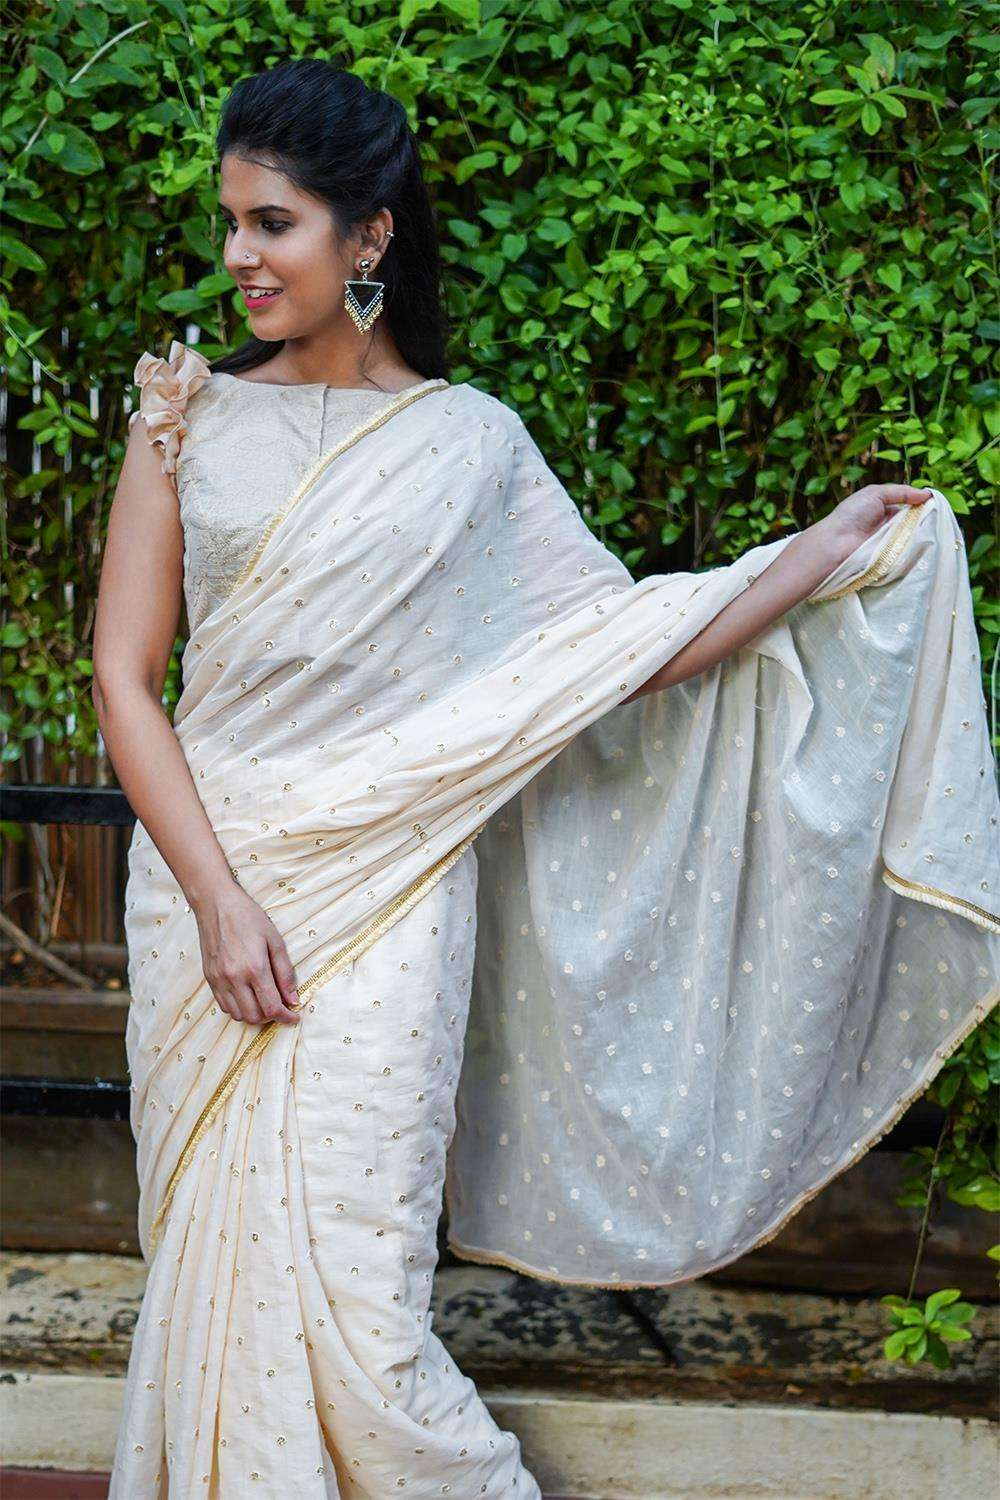 Beige mul cotton with gold sequin motifs and frill edging - House of Blouse